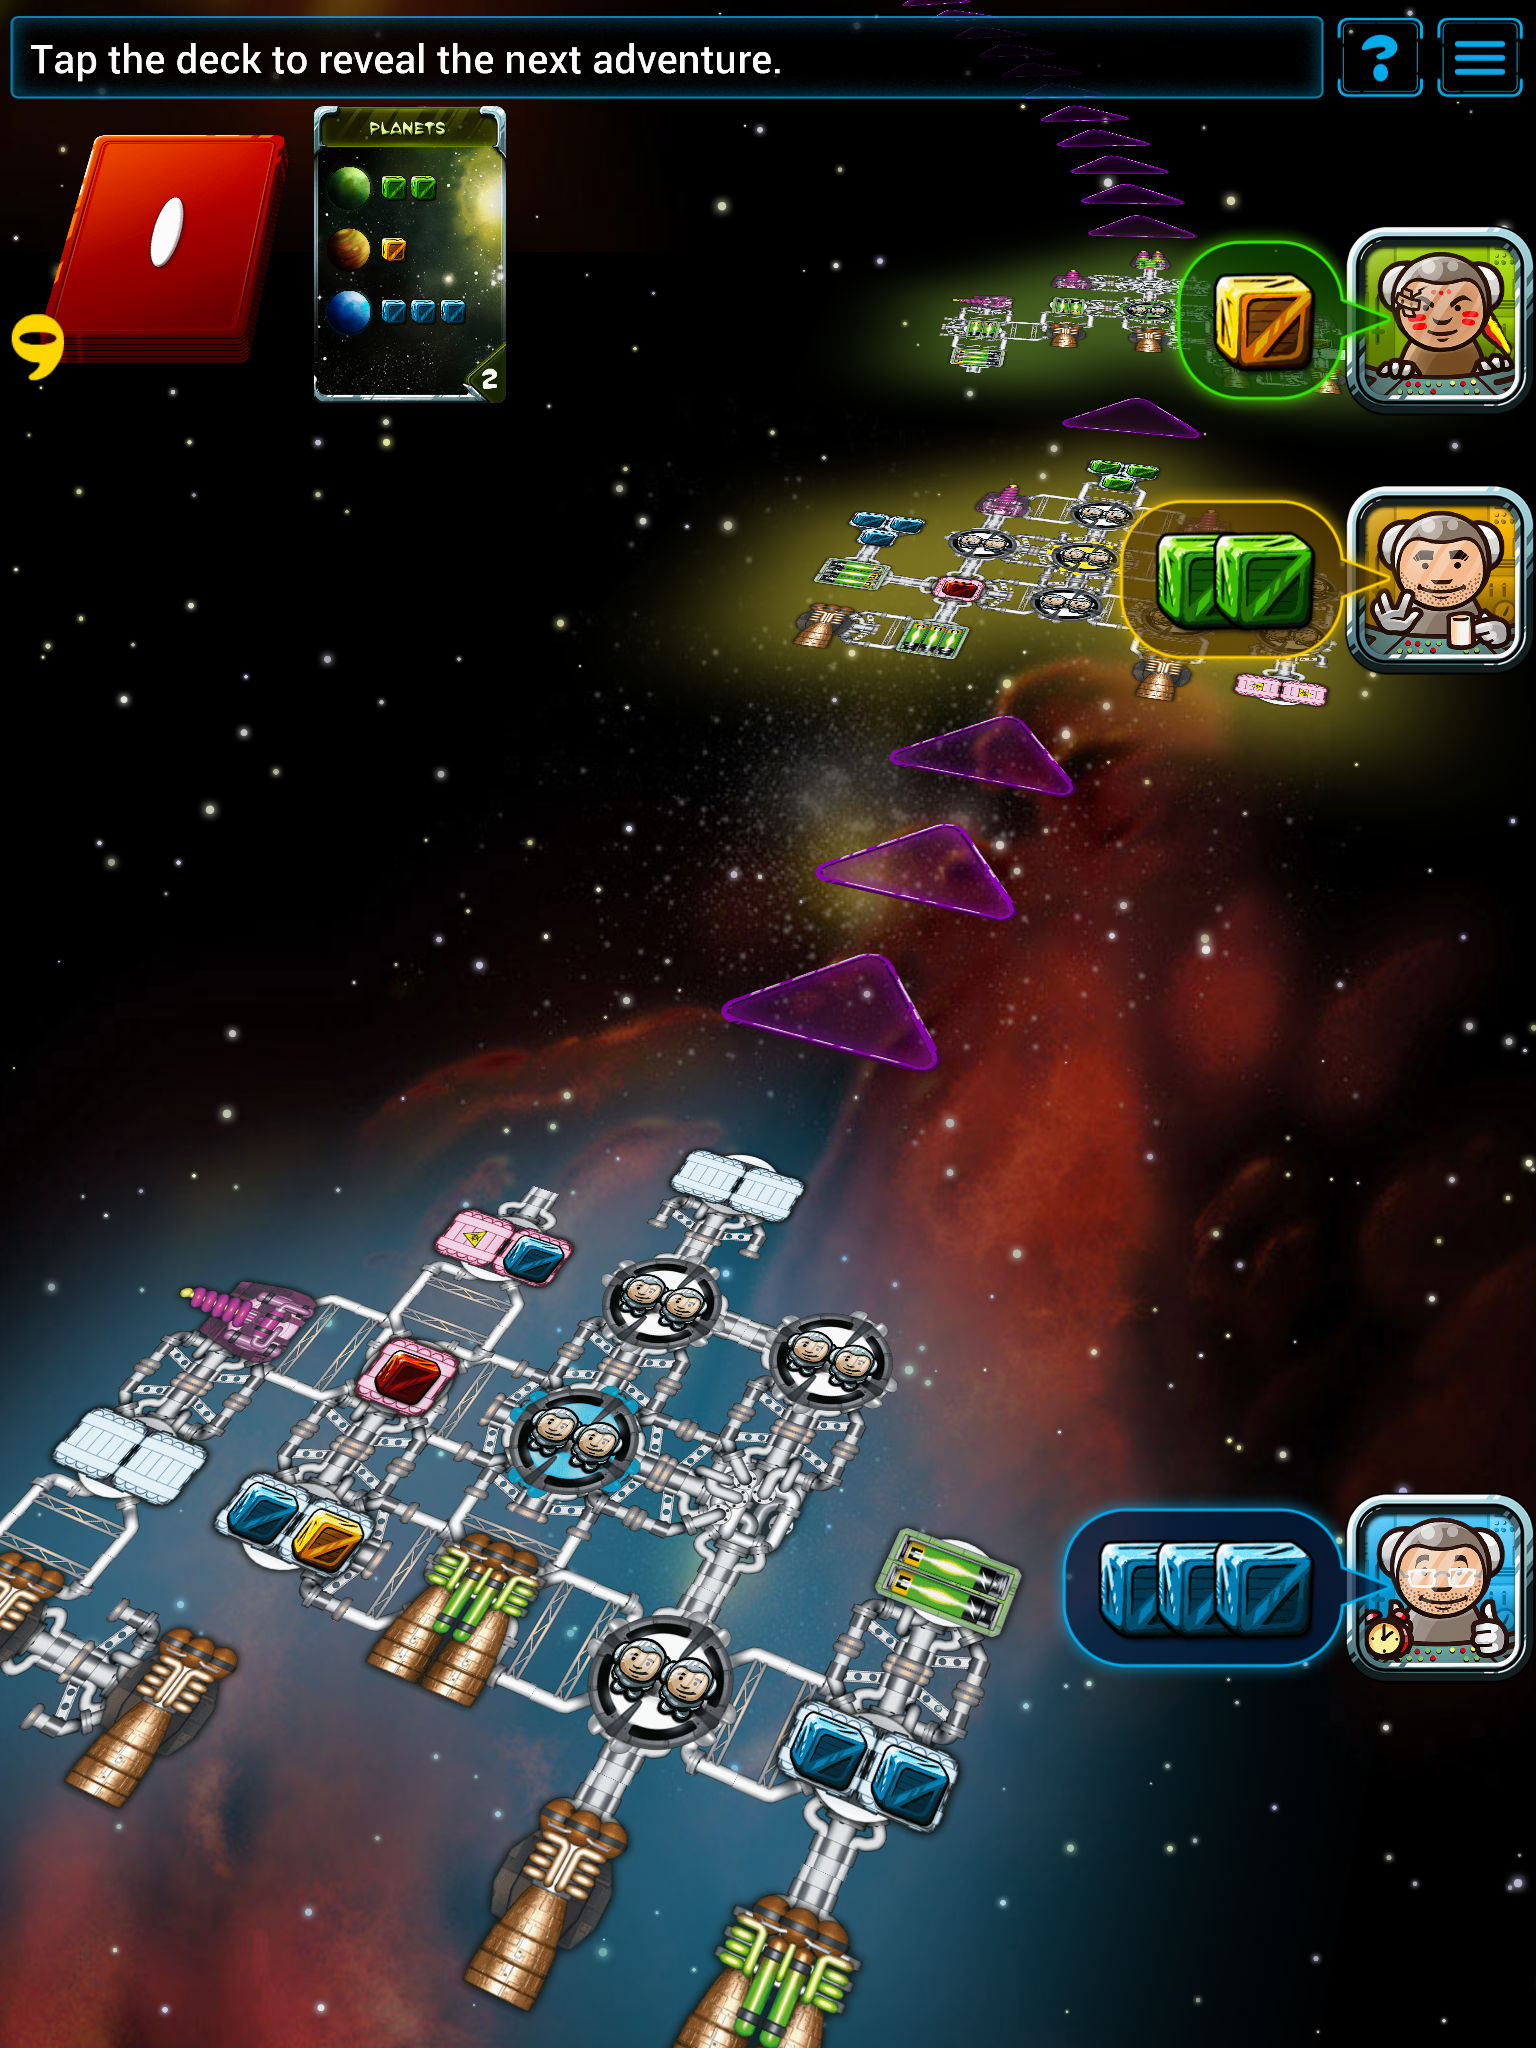 Space-faring digital board game Galaxy Trucker drops to its lowest price yet